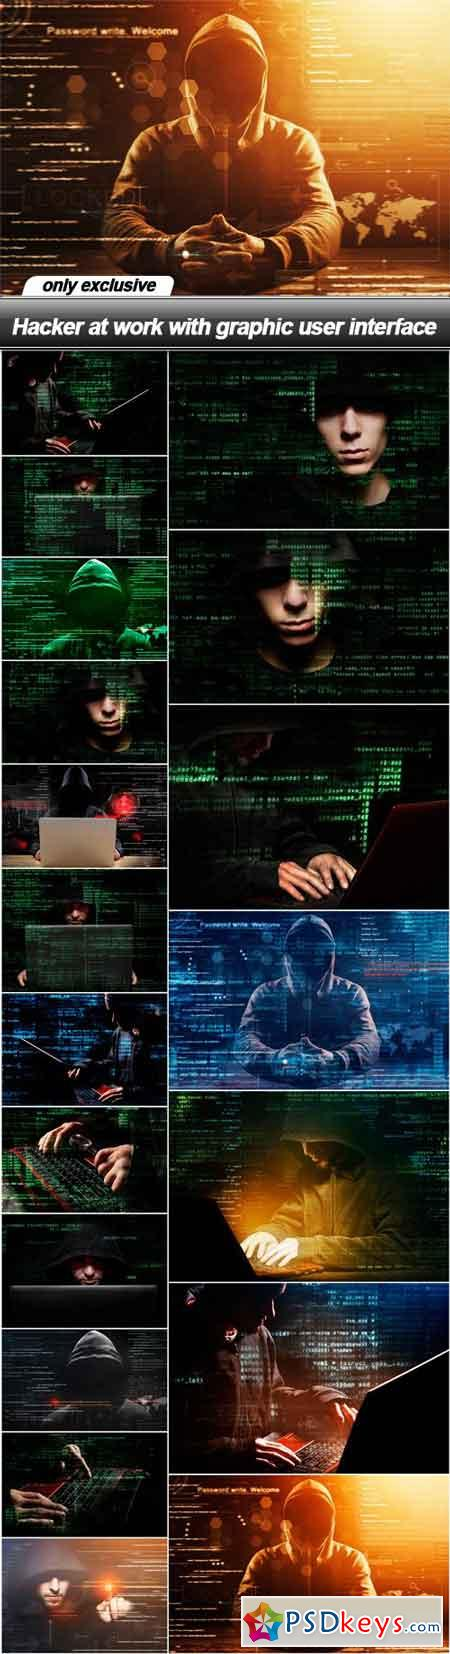 Hacker at work with graphic user interface - 19 UHQ JPEG